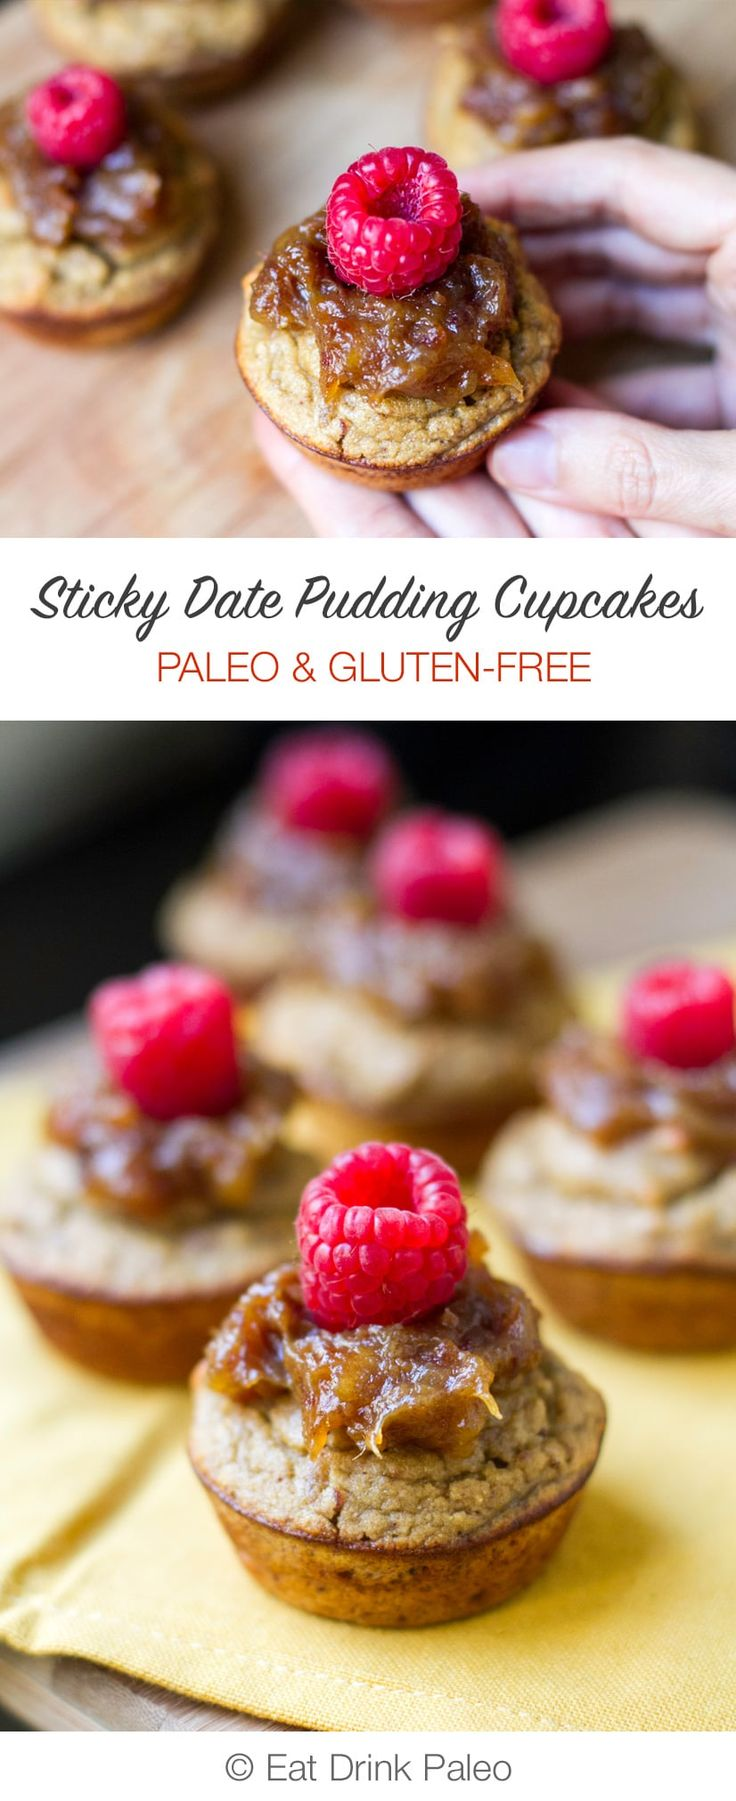 These gluten-free, paleo cupcakes are inspired by sticky date pudding and are adapted from Optimal Health The Paleo Way book (review included).